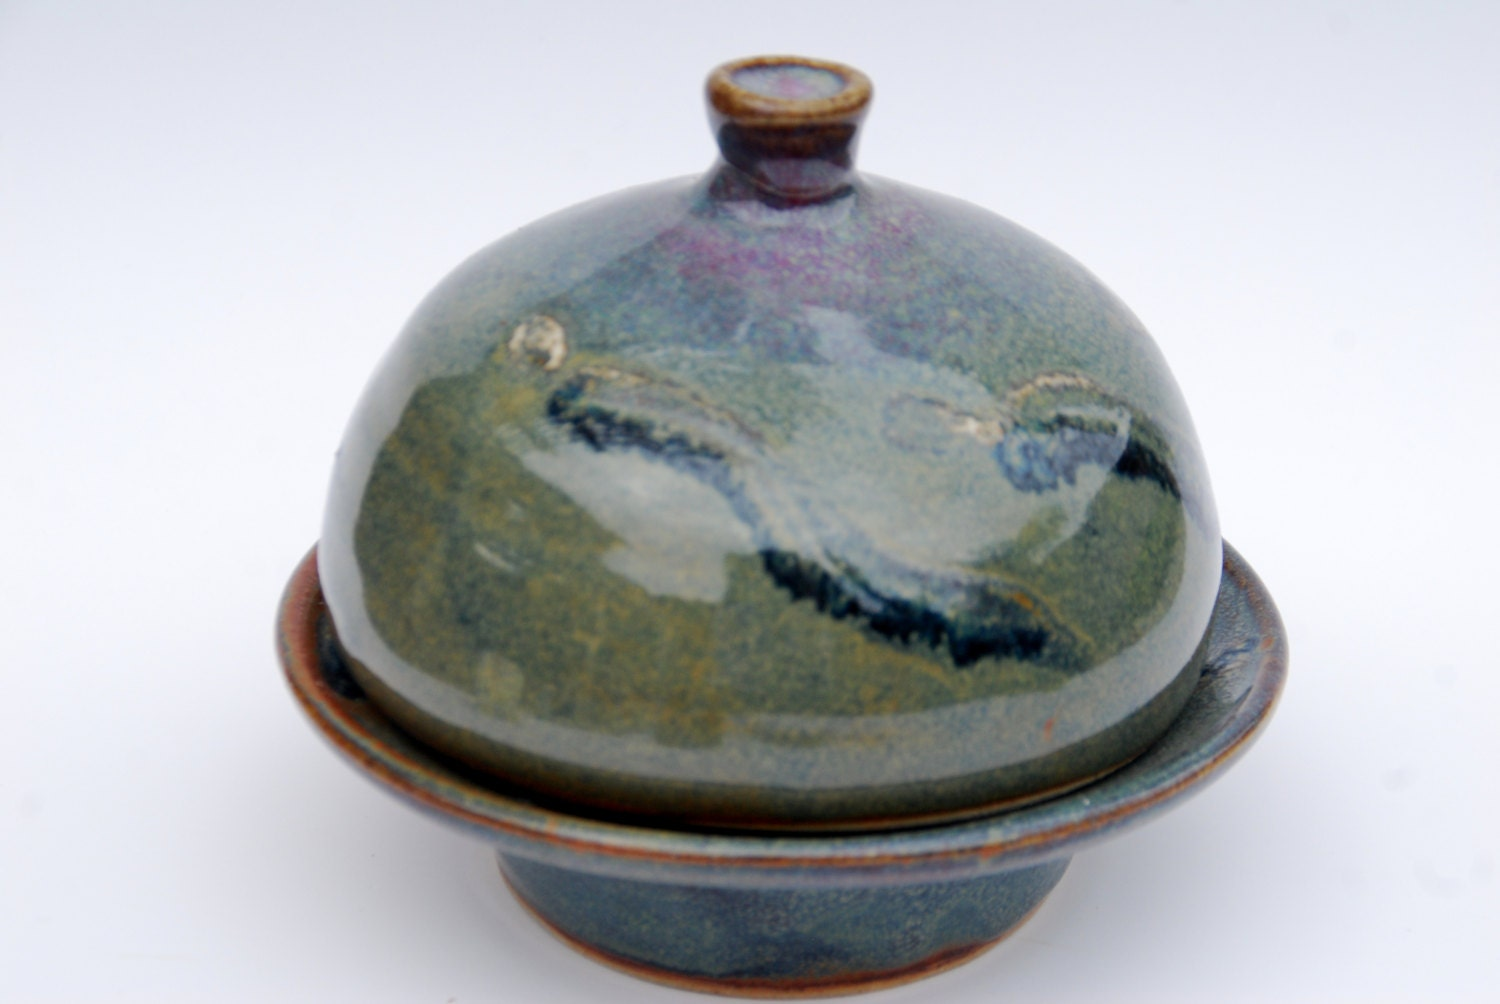 Handmade Pottery Ceramic Butter Dish With Lid By